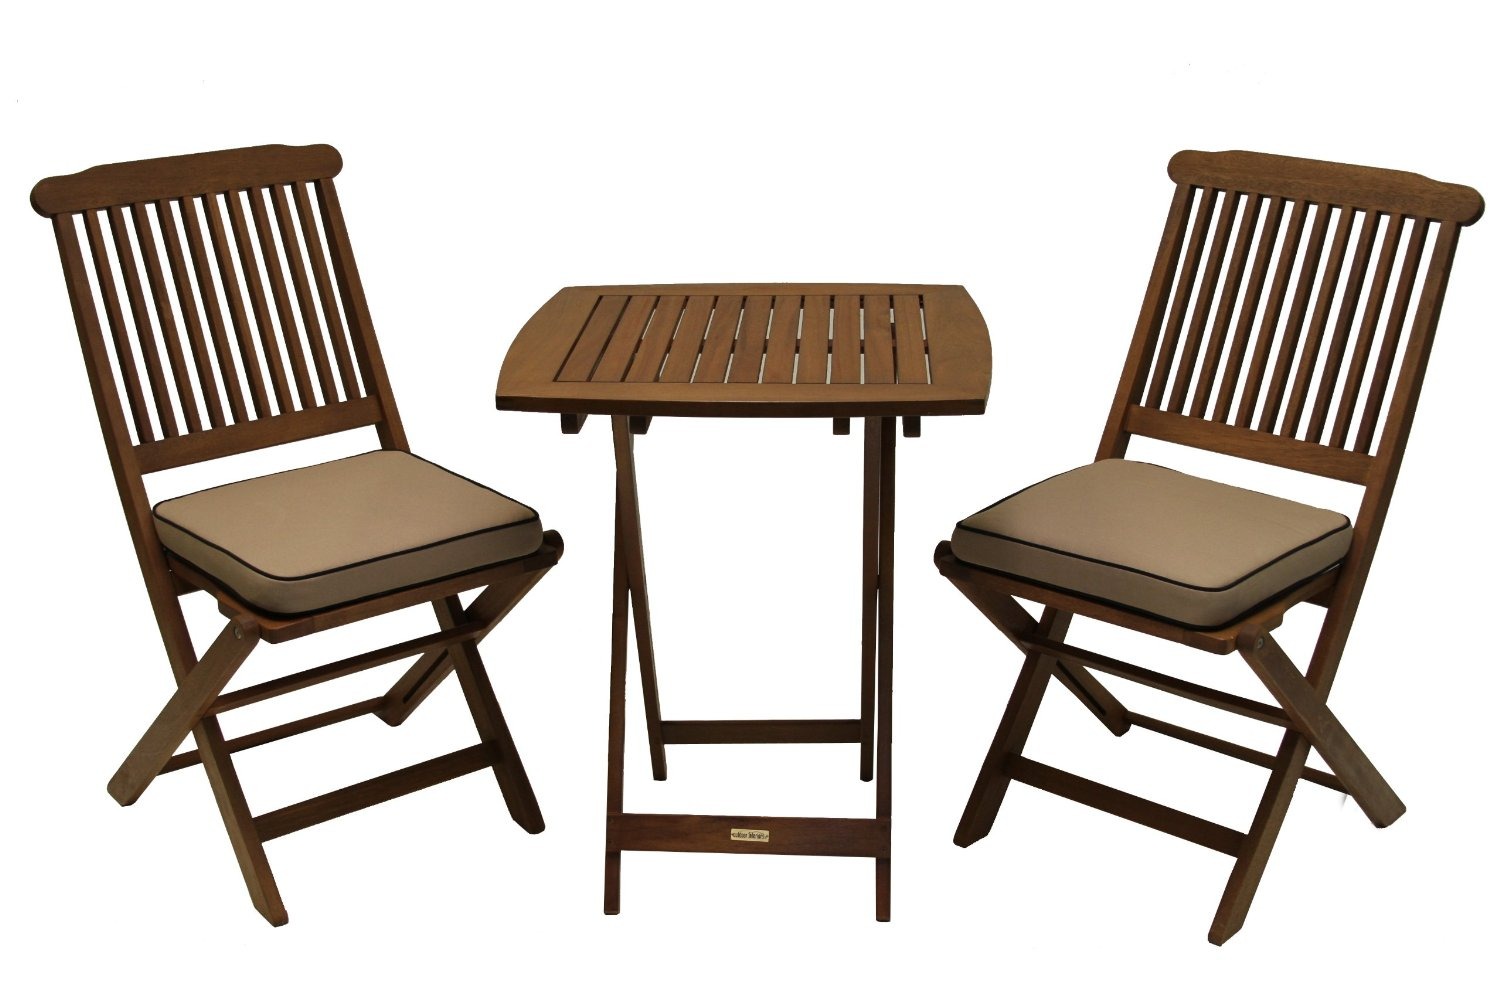 patio furniture images july 2014 On lawn and patio furniture